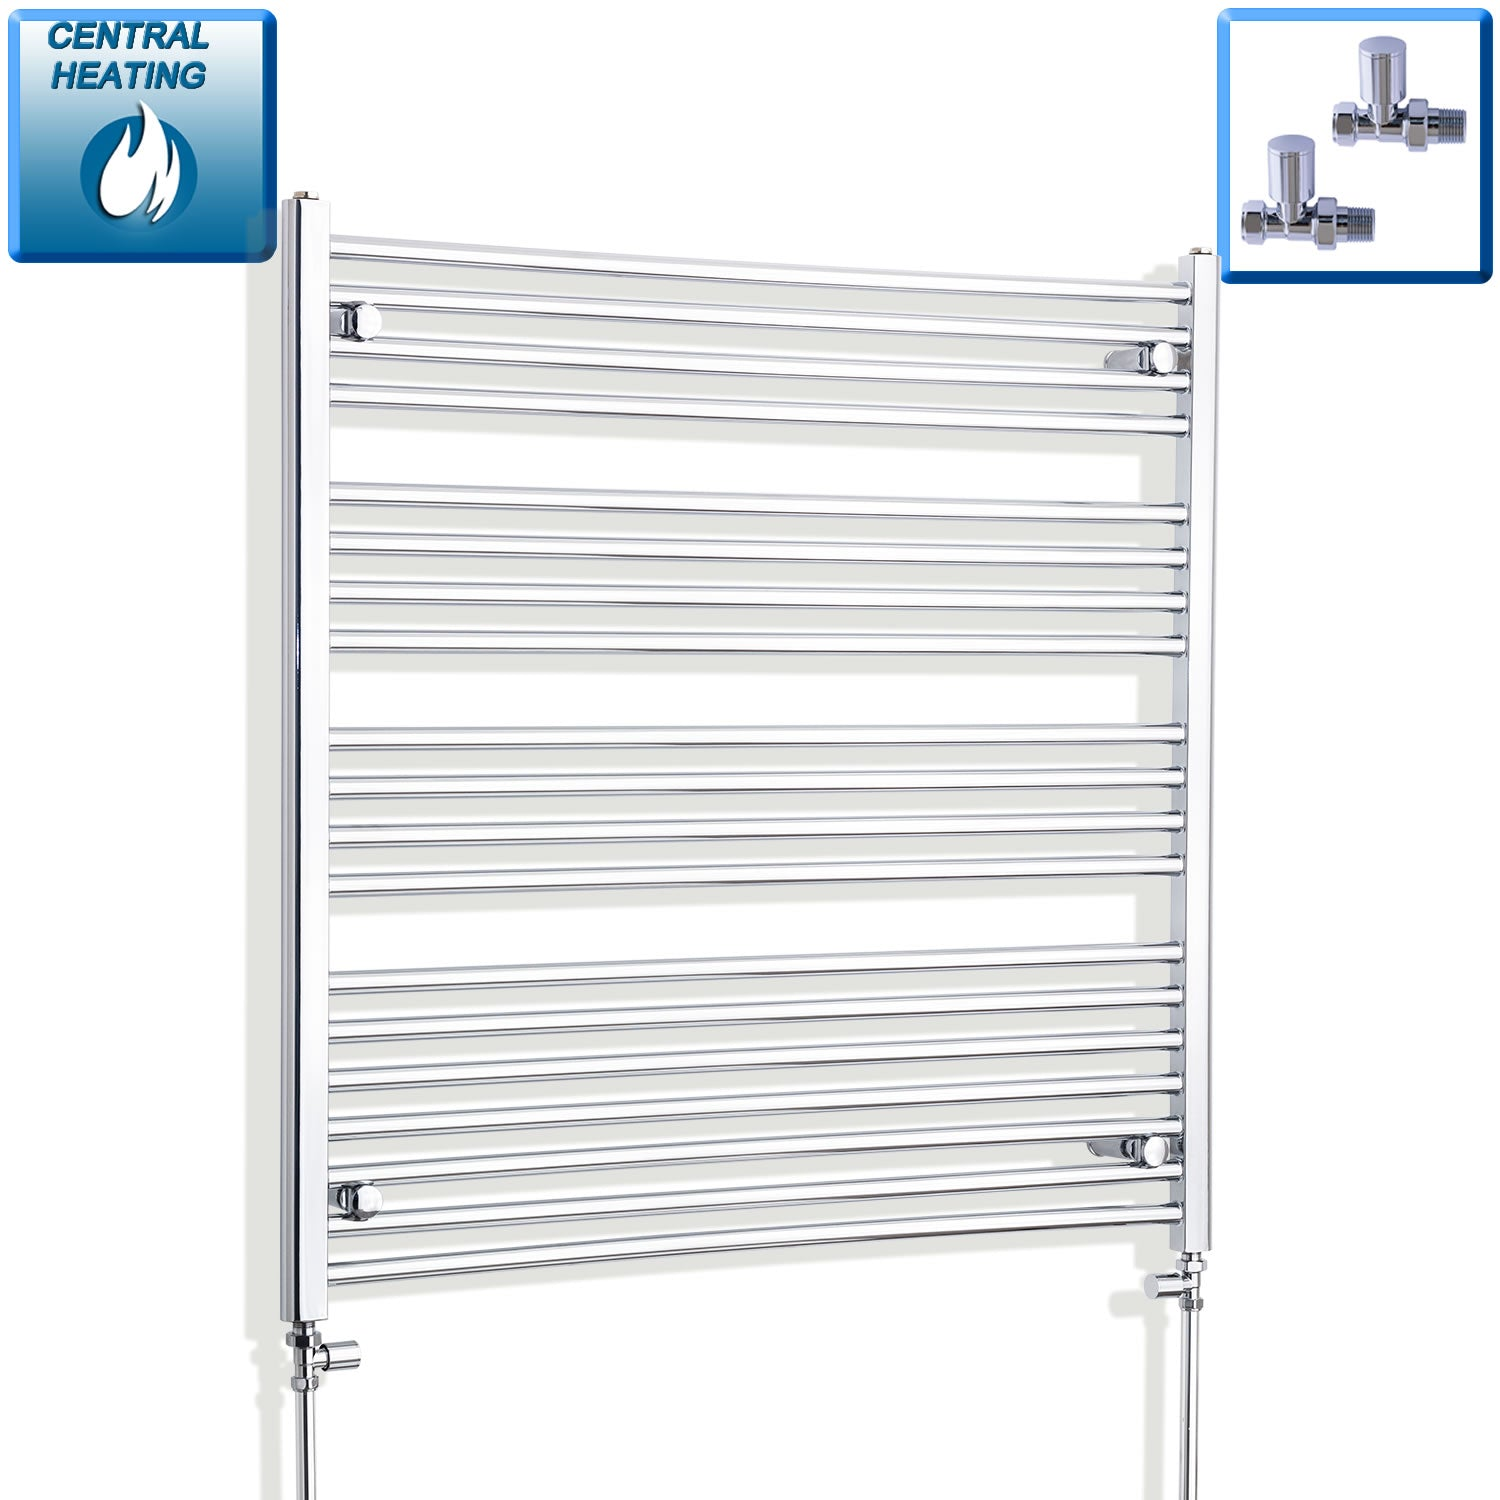 1200mm Wide 900mm High Chrome Towel Rail Radiator With Straight Valve